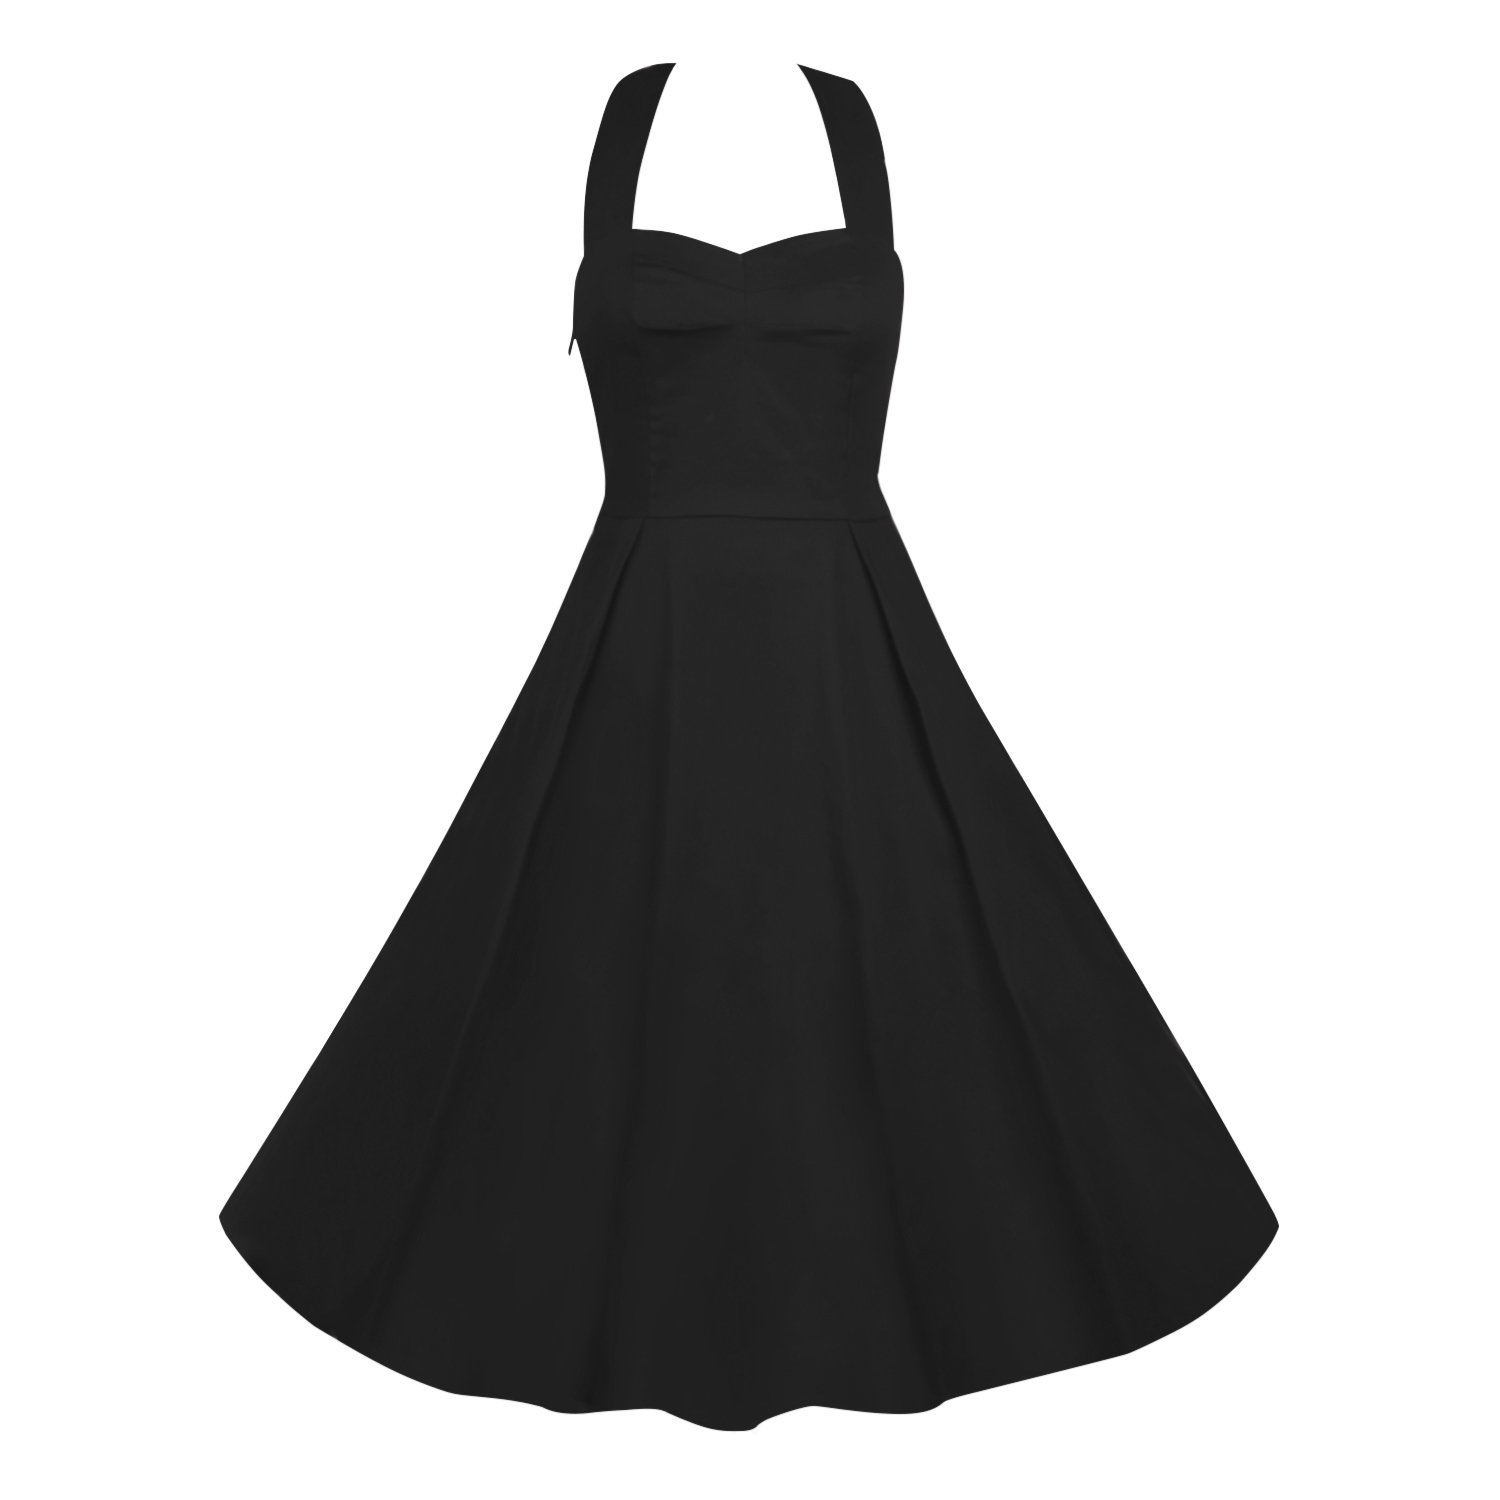 1950s 50s Costumes- Poodle Skirts, Grease, Monroe, Pin up, I Love Lucy iLover Classy Vintage Audrey Hepburn Style 1950s Rockabilly Swing Evening Dress $31.99 AT vintagedancer.com